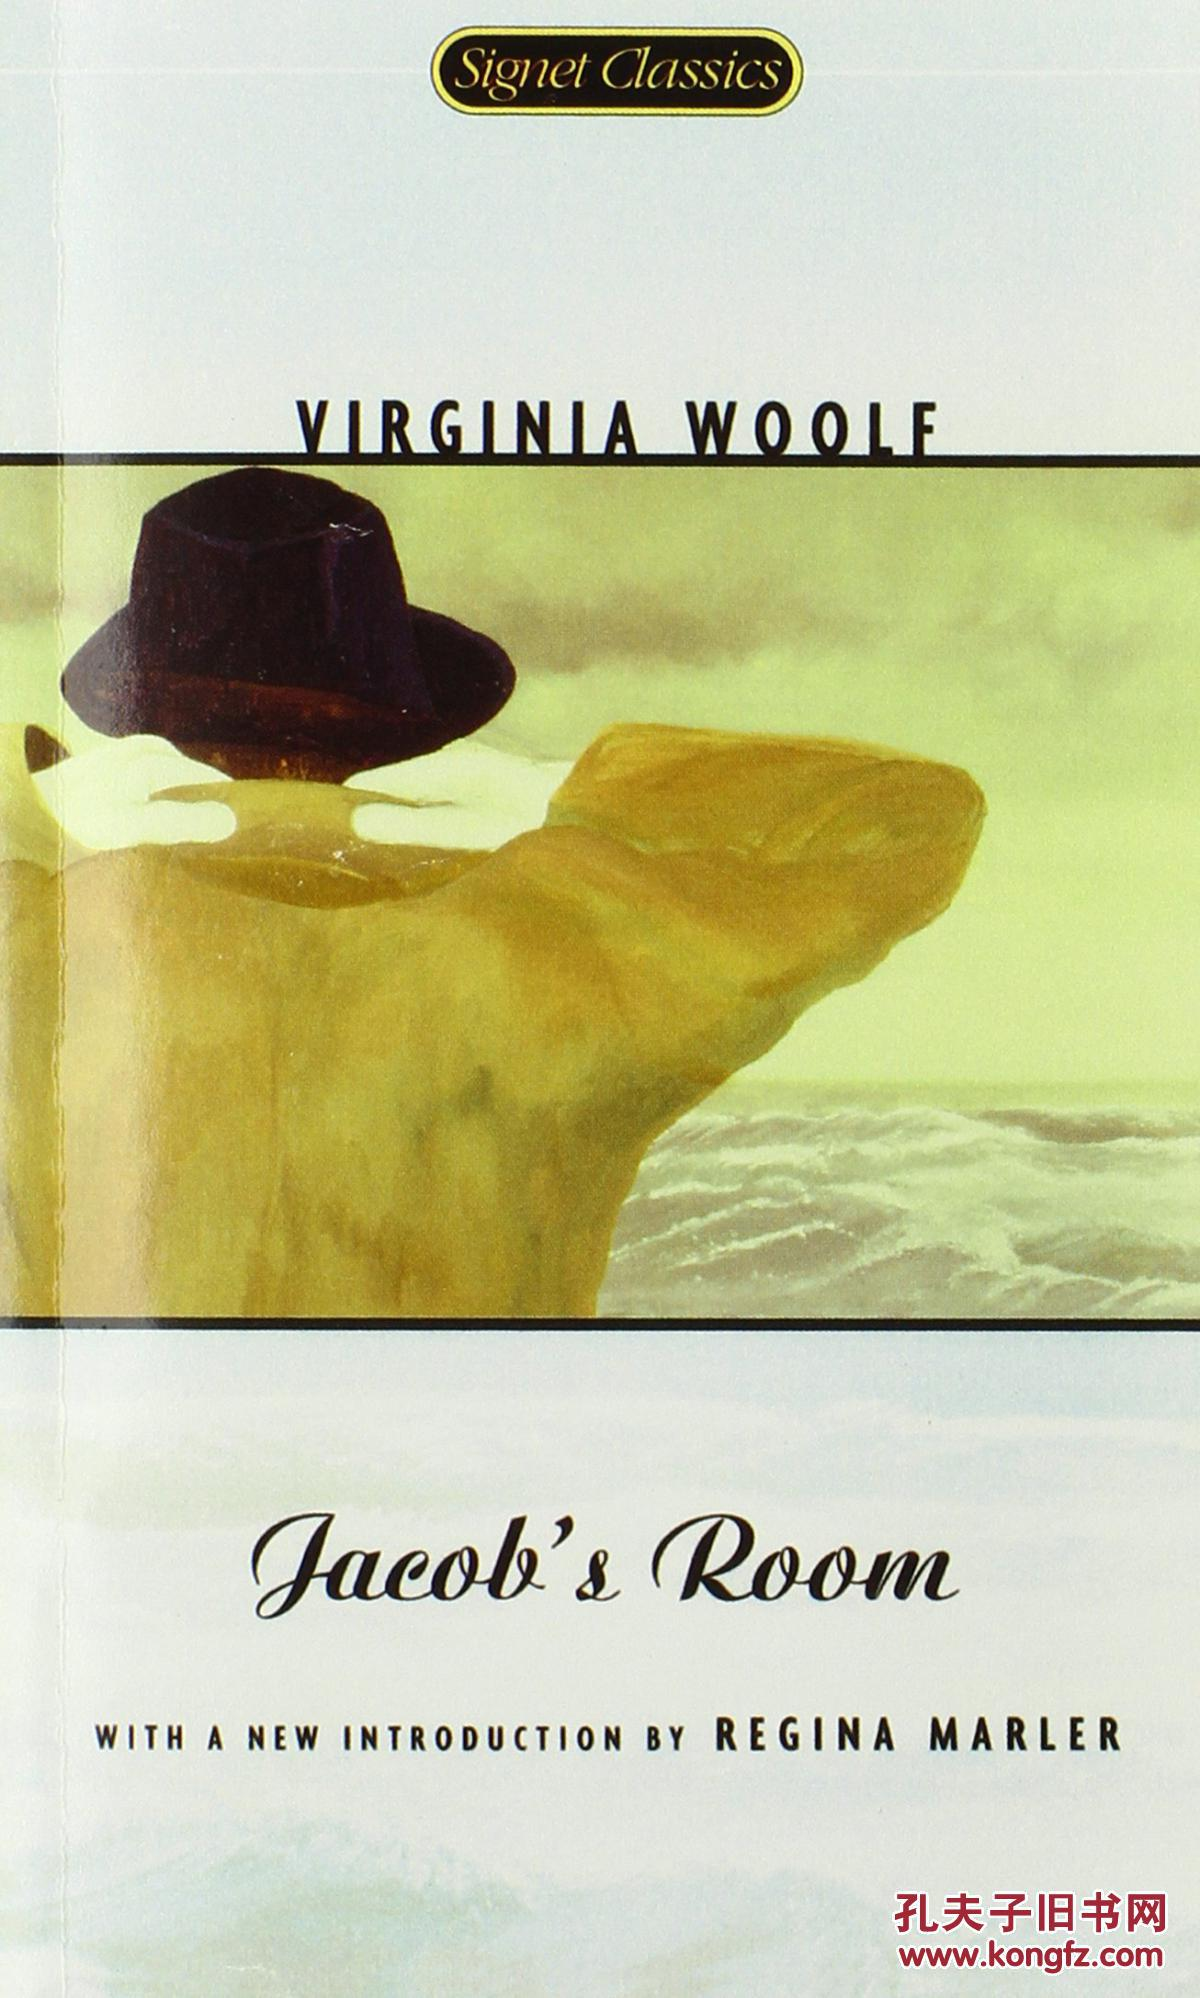 (英文原版)雅各的房间 Jacob's Room(Virginia Woolf 弗吉尼亚·伍尔夫)